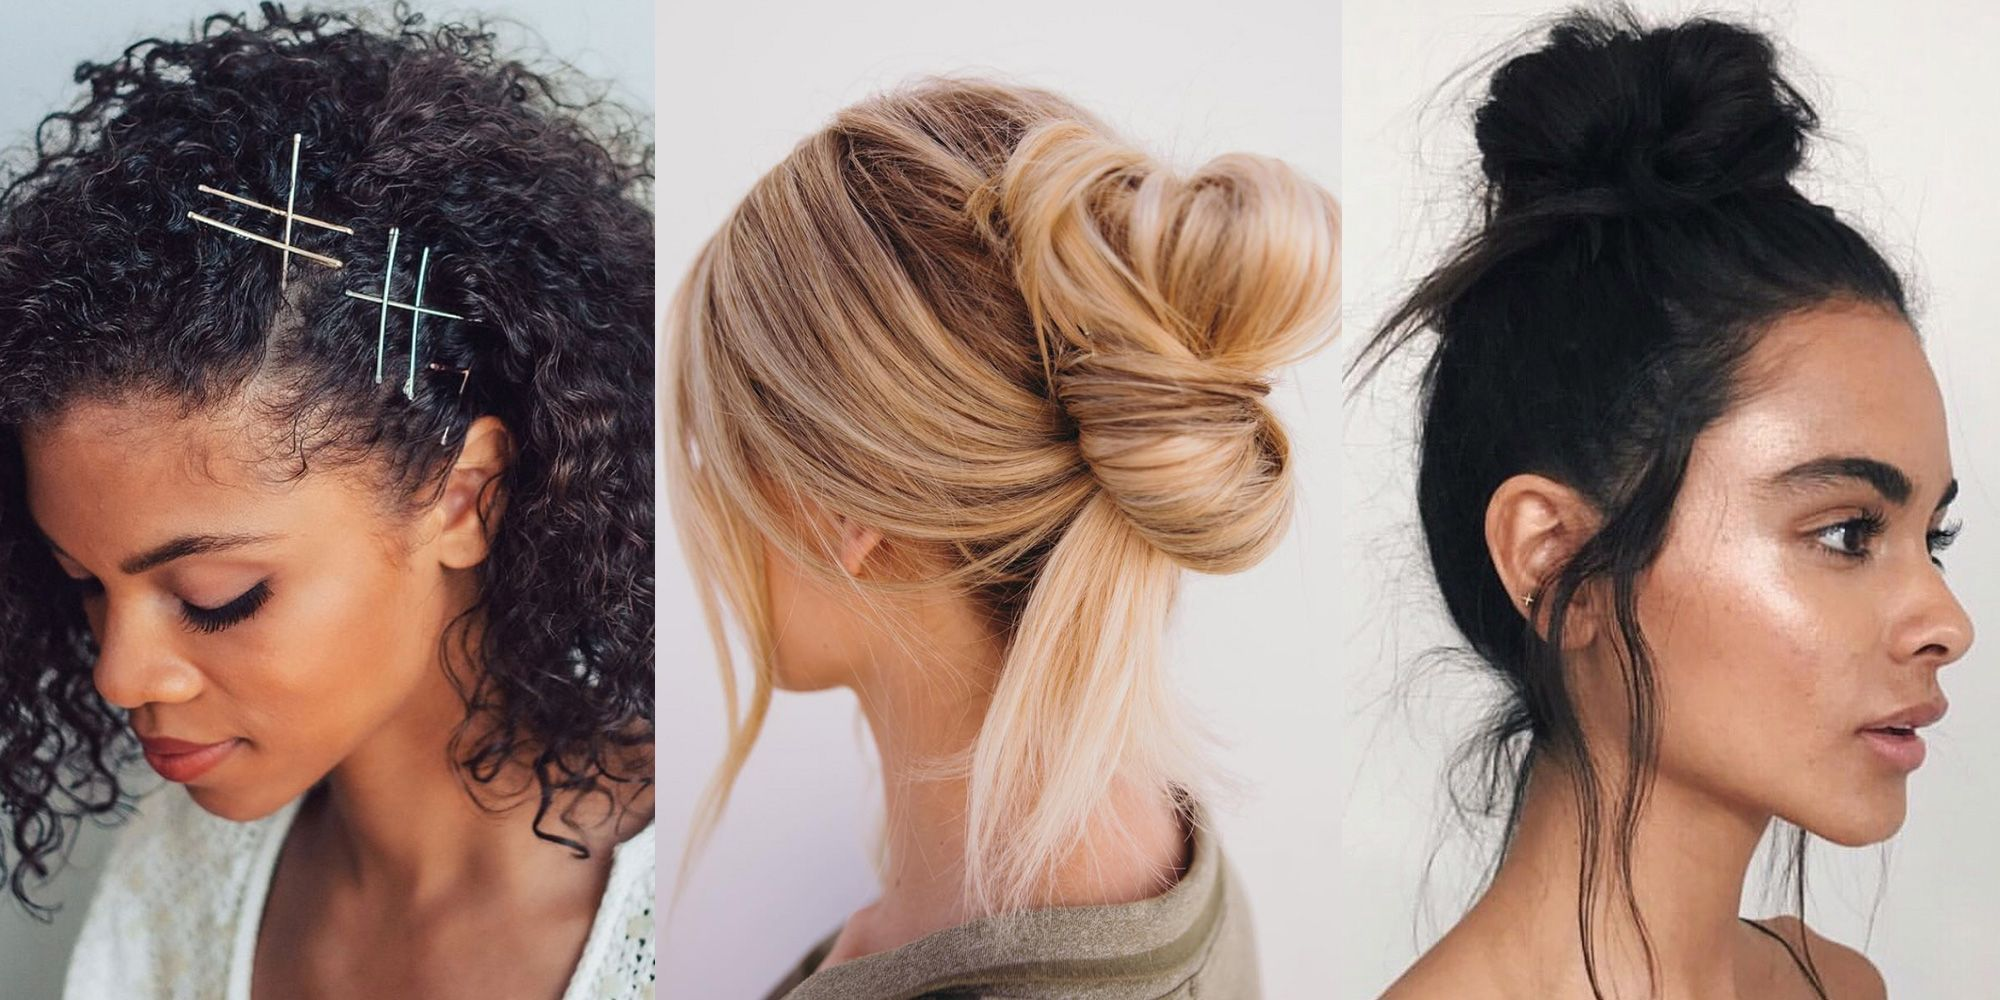 11 cute hairstyles for summer 2019 – ways to style hair in